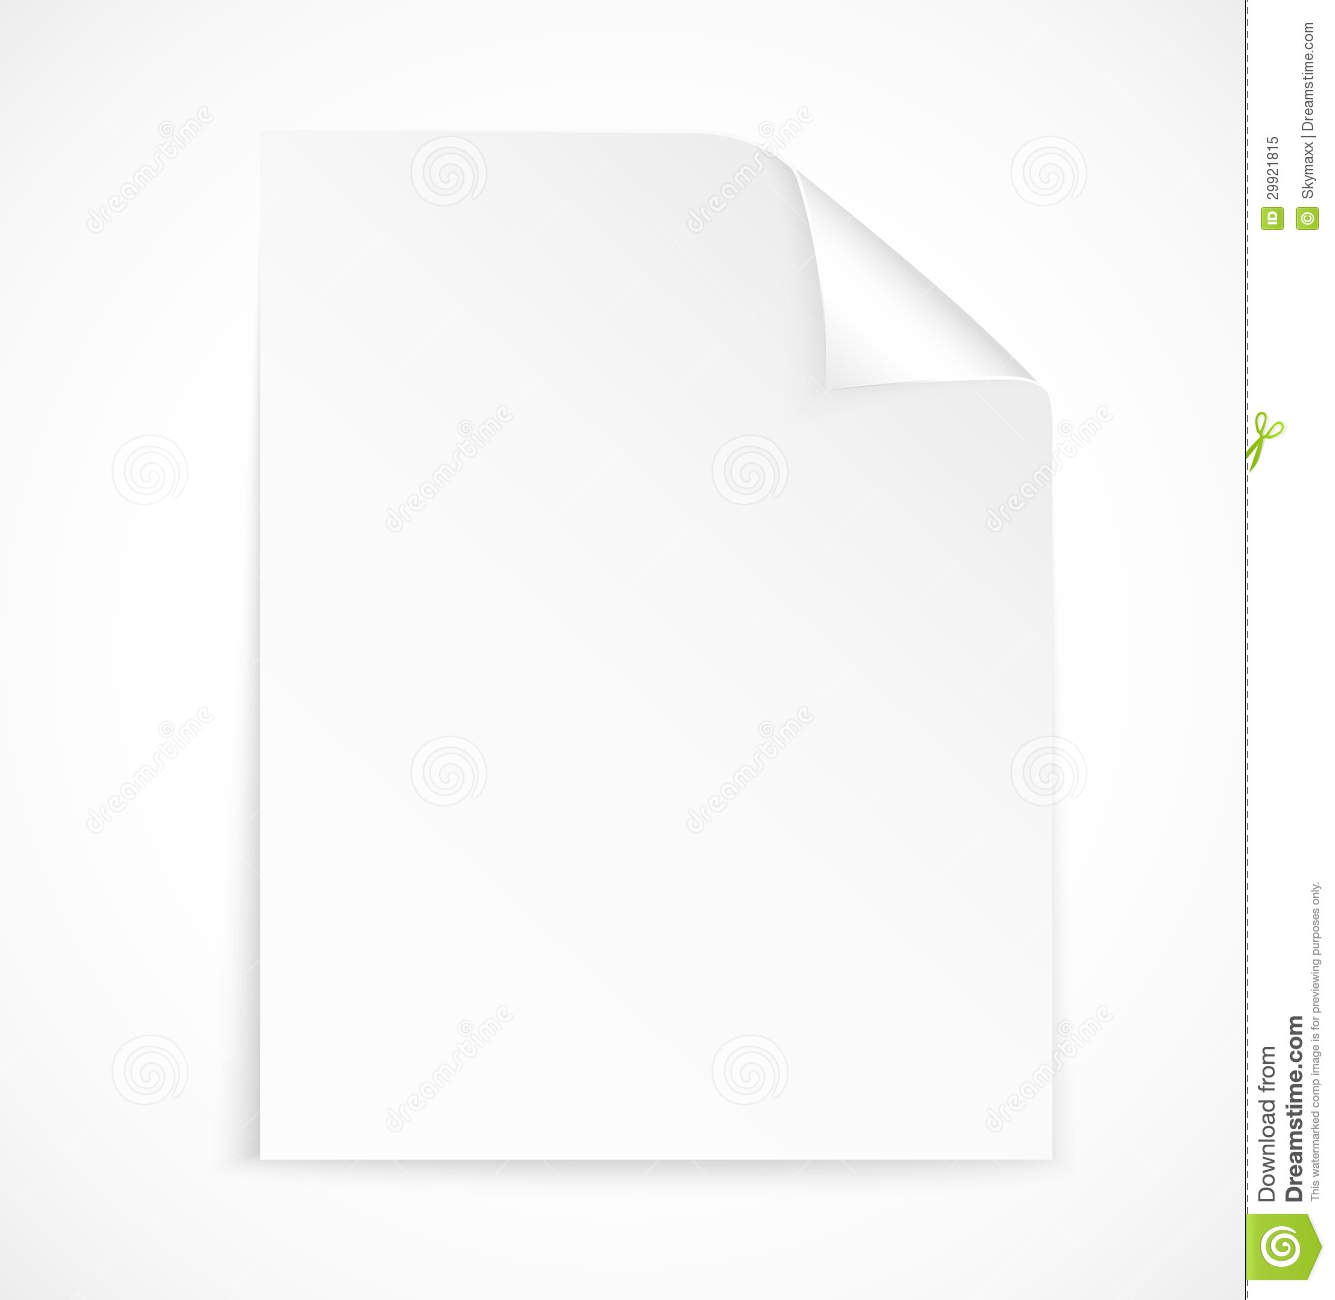 Blank Letter Paper Icon Royalty Free Stock Photo - Image: 29921815